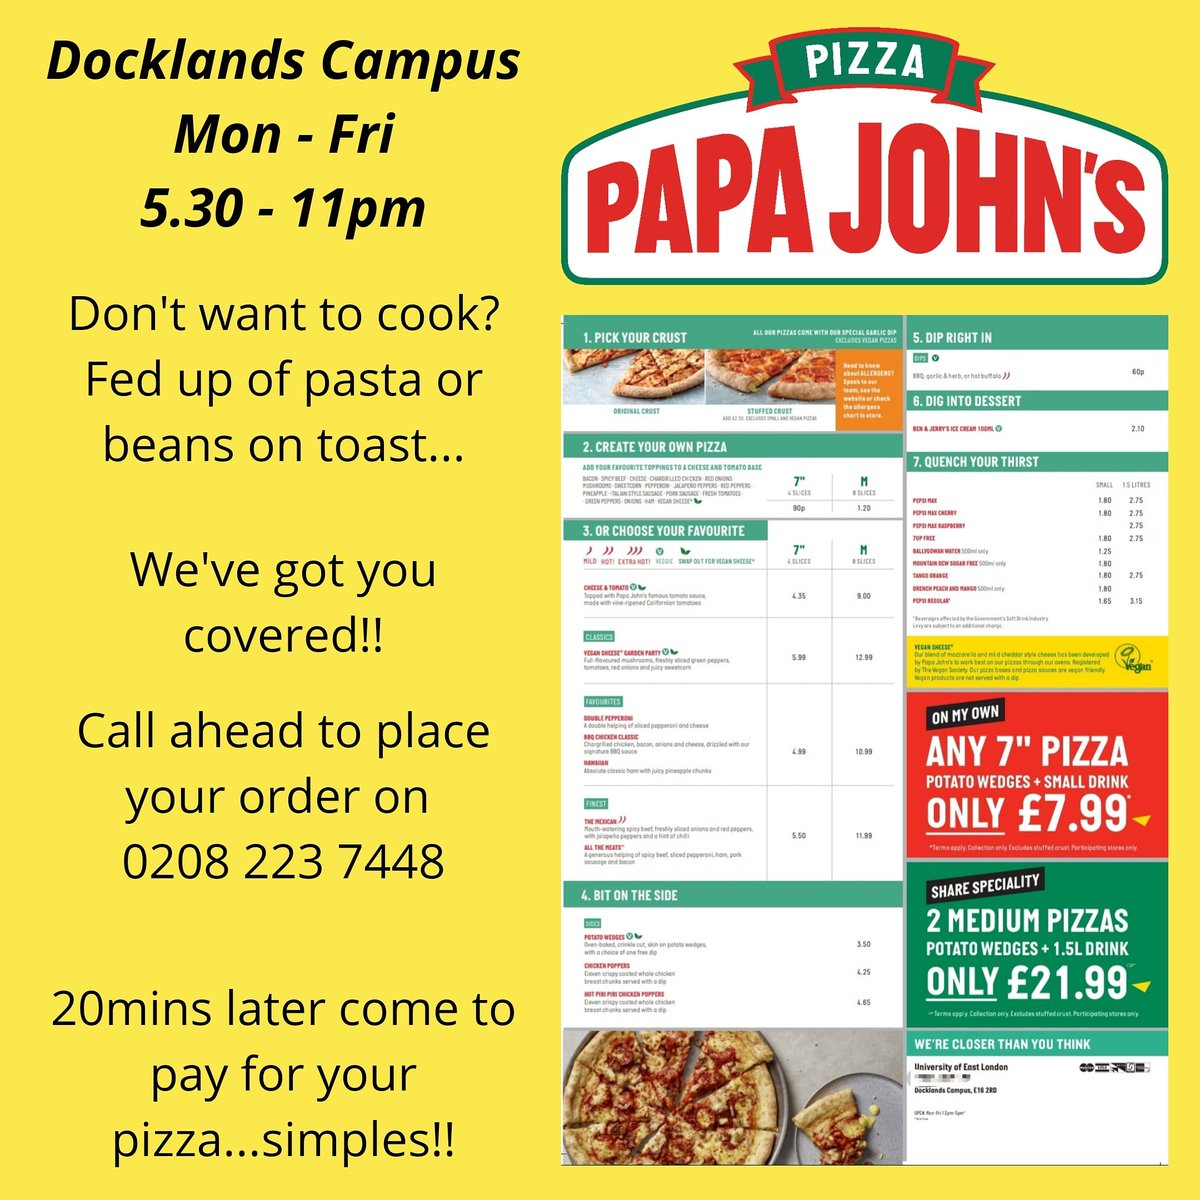 Save yourself the boredom of yet another pasta dish...how about some delicious,  piping hot pizza instead? We are here, at the Docklands Campus for you, open 5.30pm-11pm, Mon - Fri. #pizzalovers🍕 #opentilllate #cheaperoncampus #DocklandsCampus #UEL #uellife #ueatwell https://t.co/OHlYVsq8uH